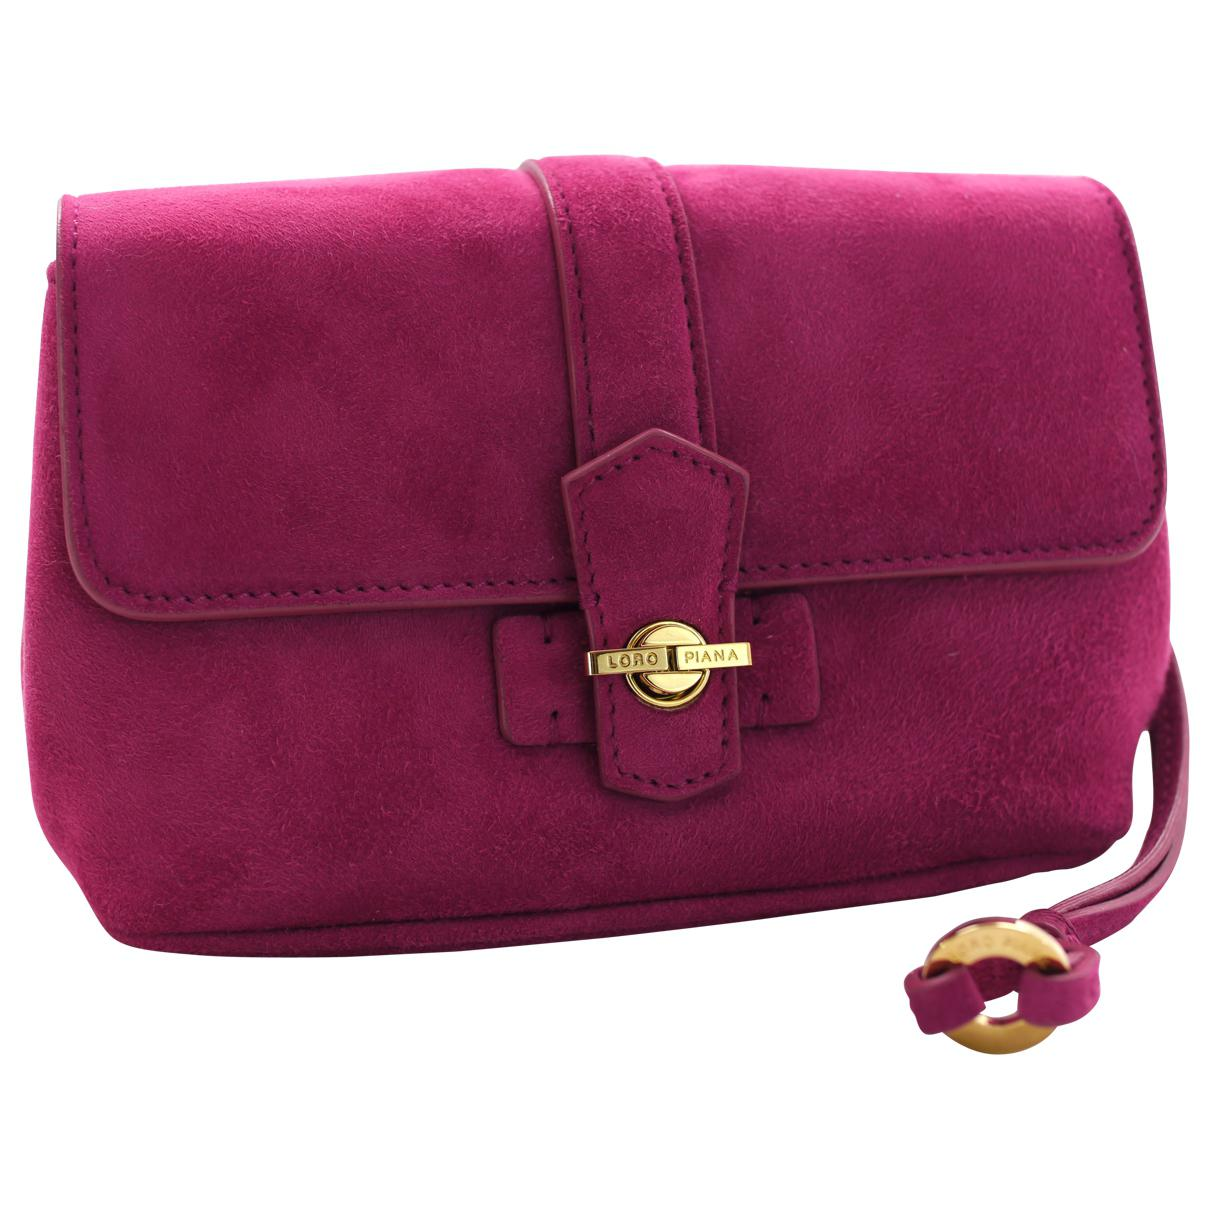 Loro Piana Pre-owned - Clutch bag jerfcwn